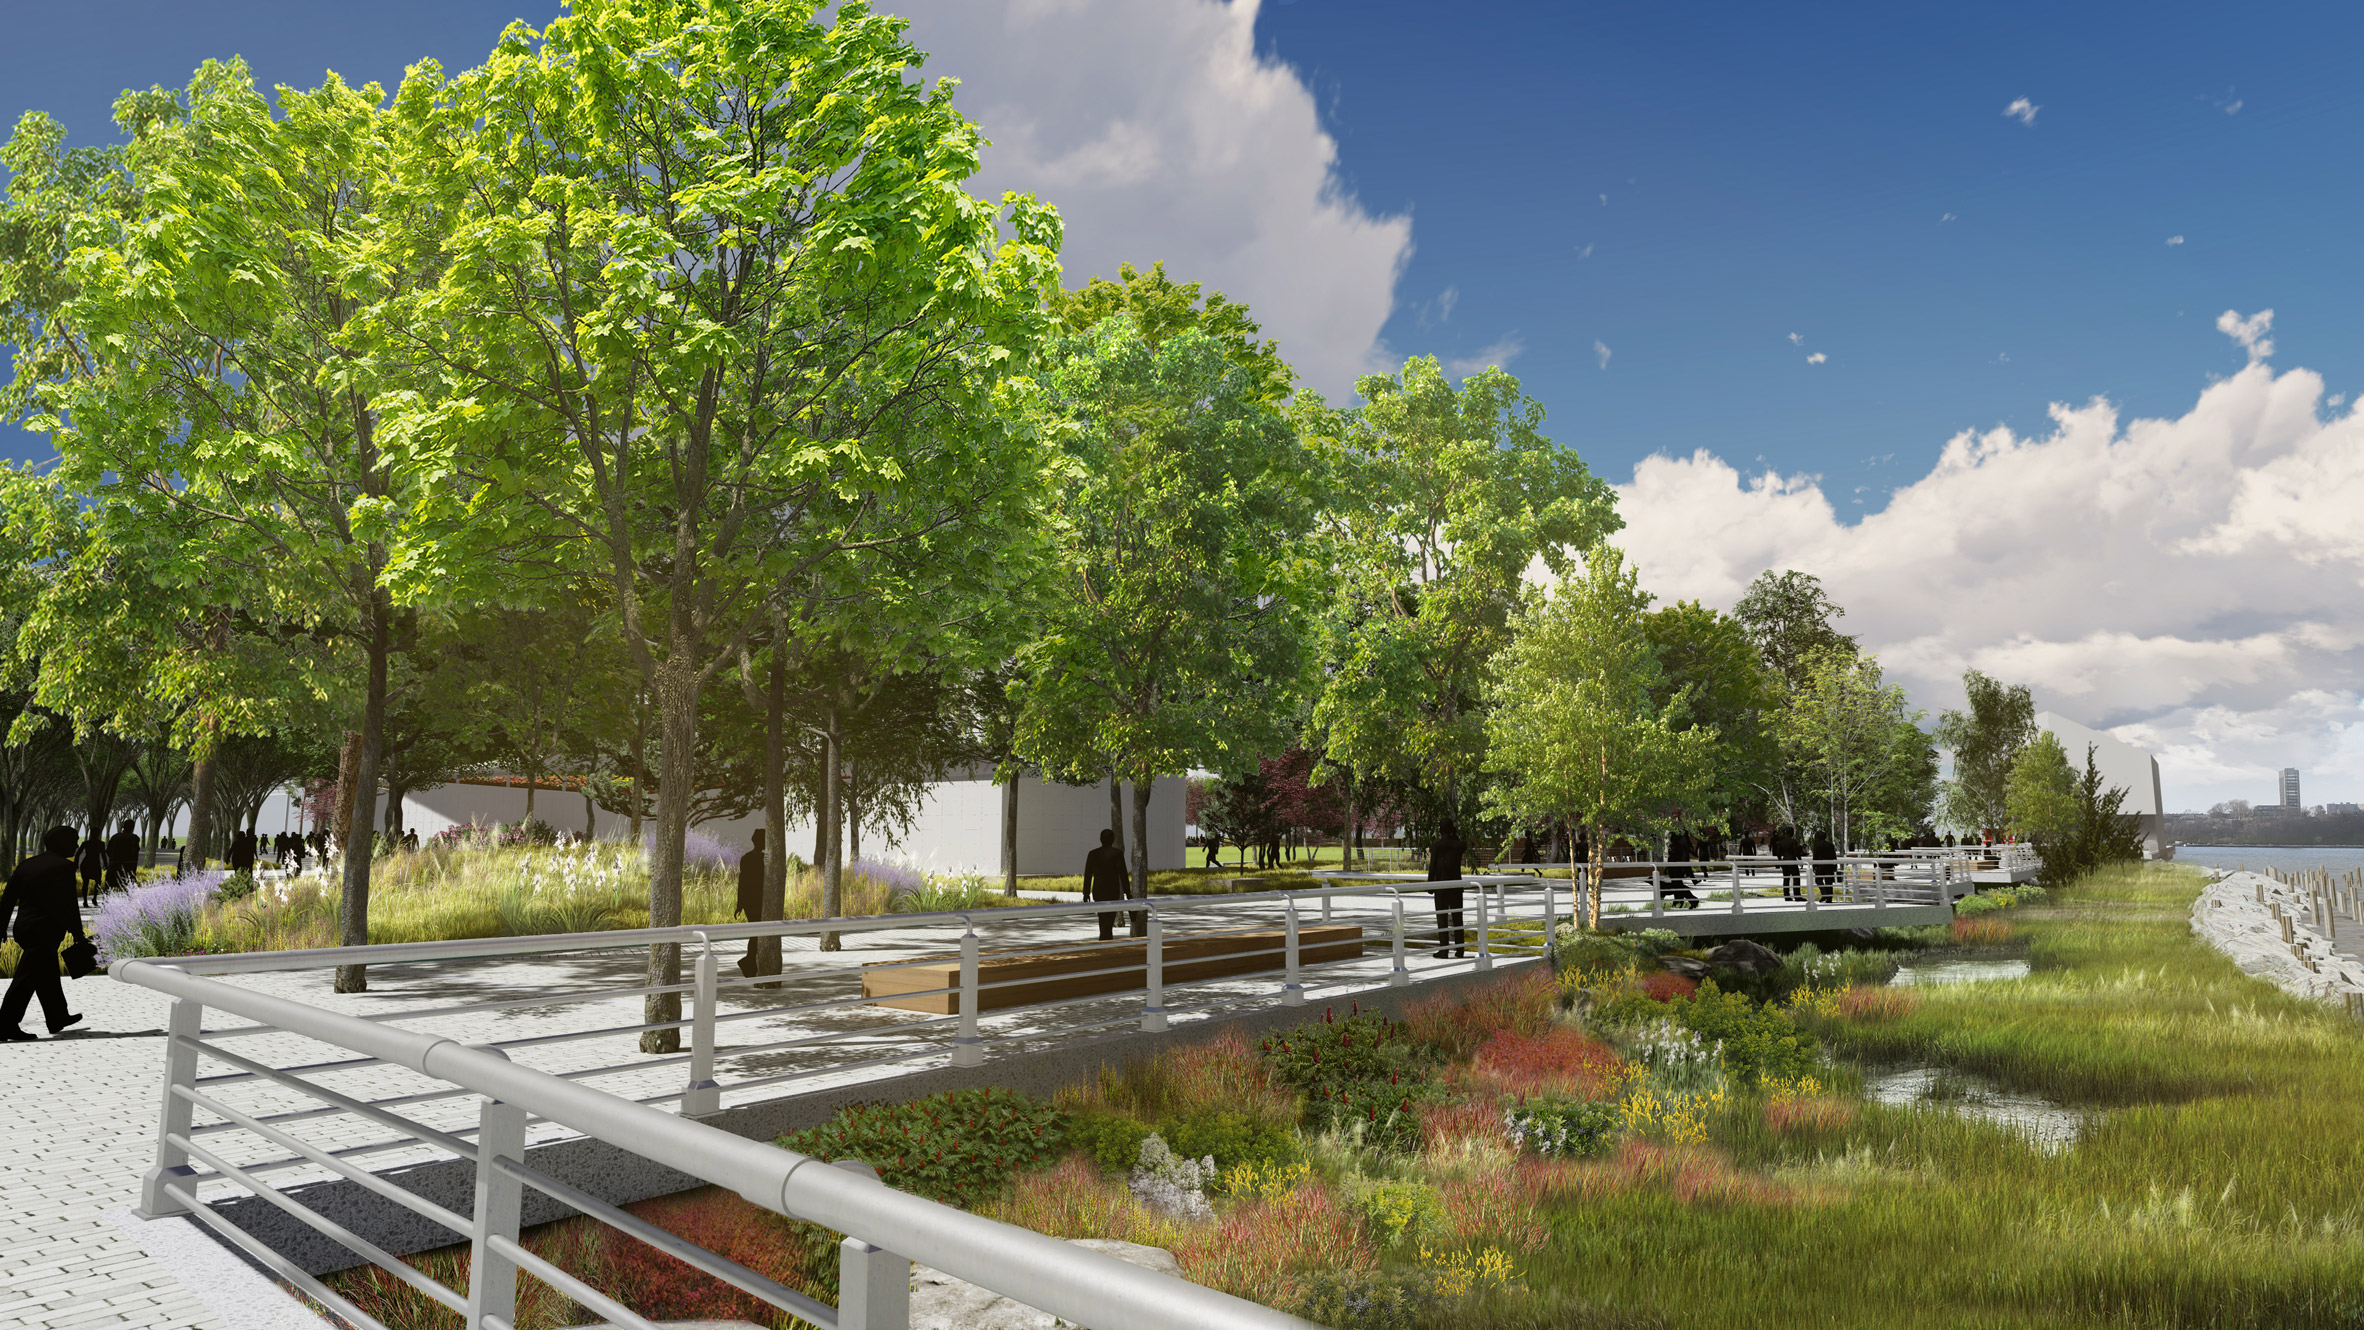 The project is by the Hudson River Park Trust